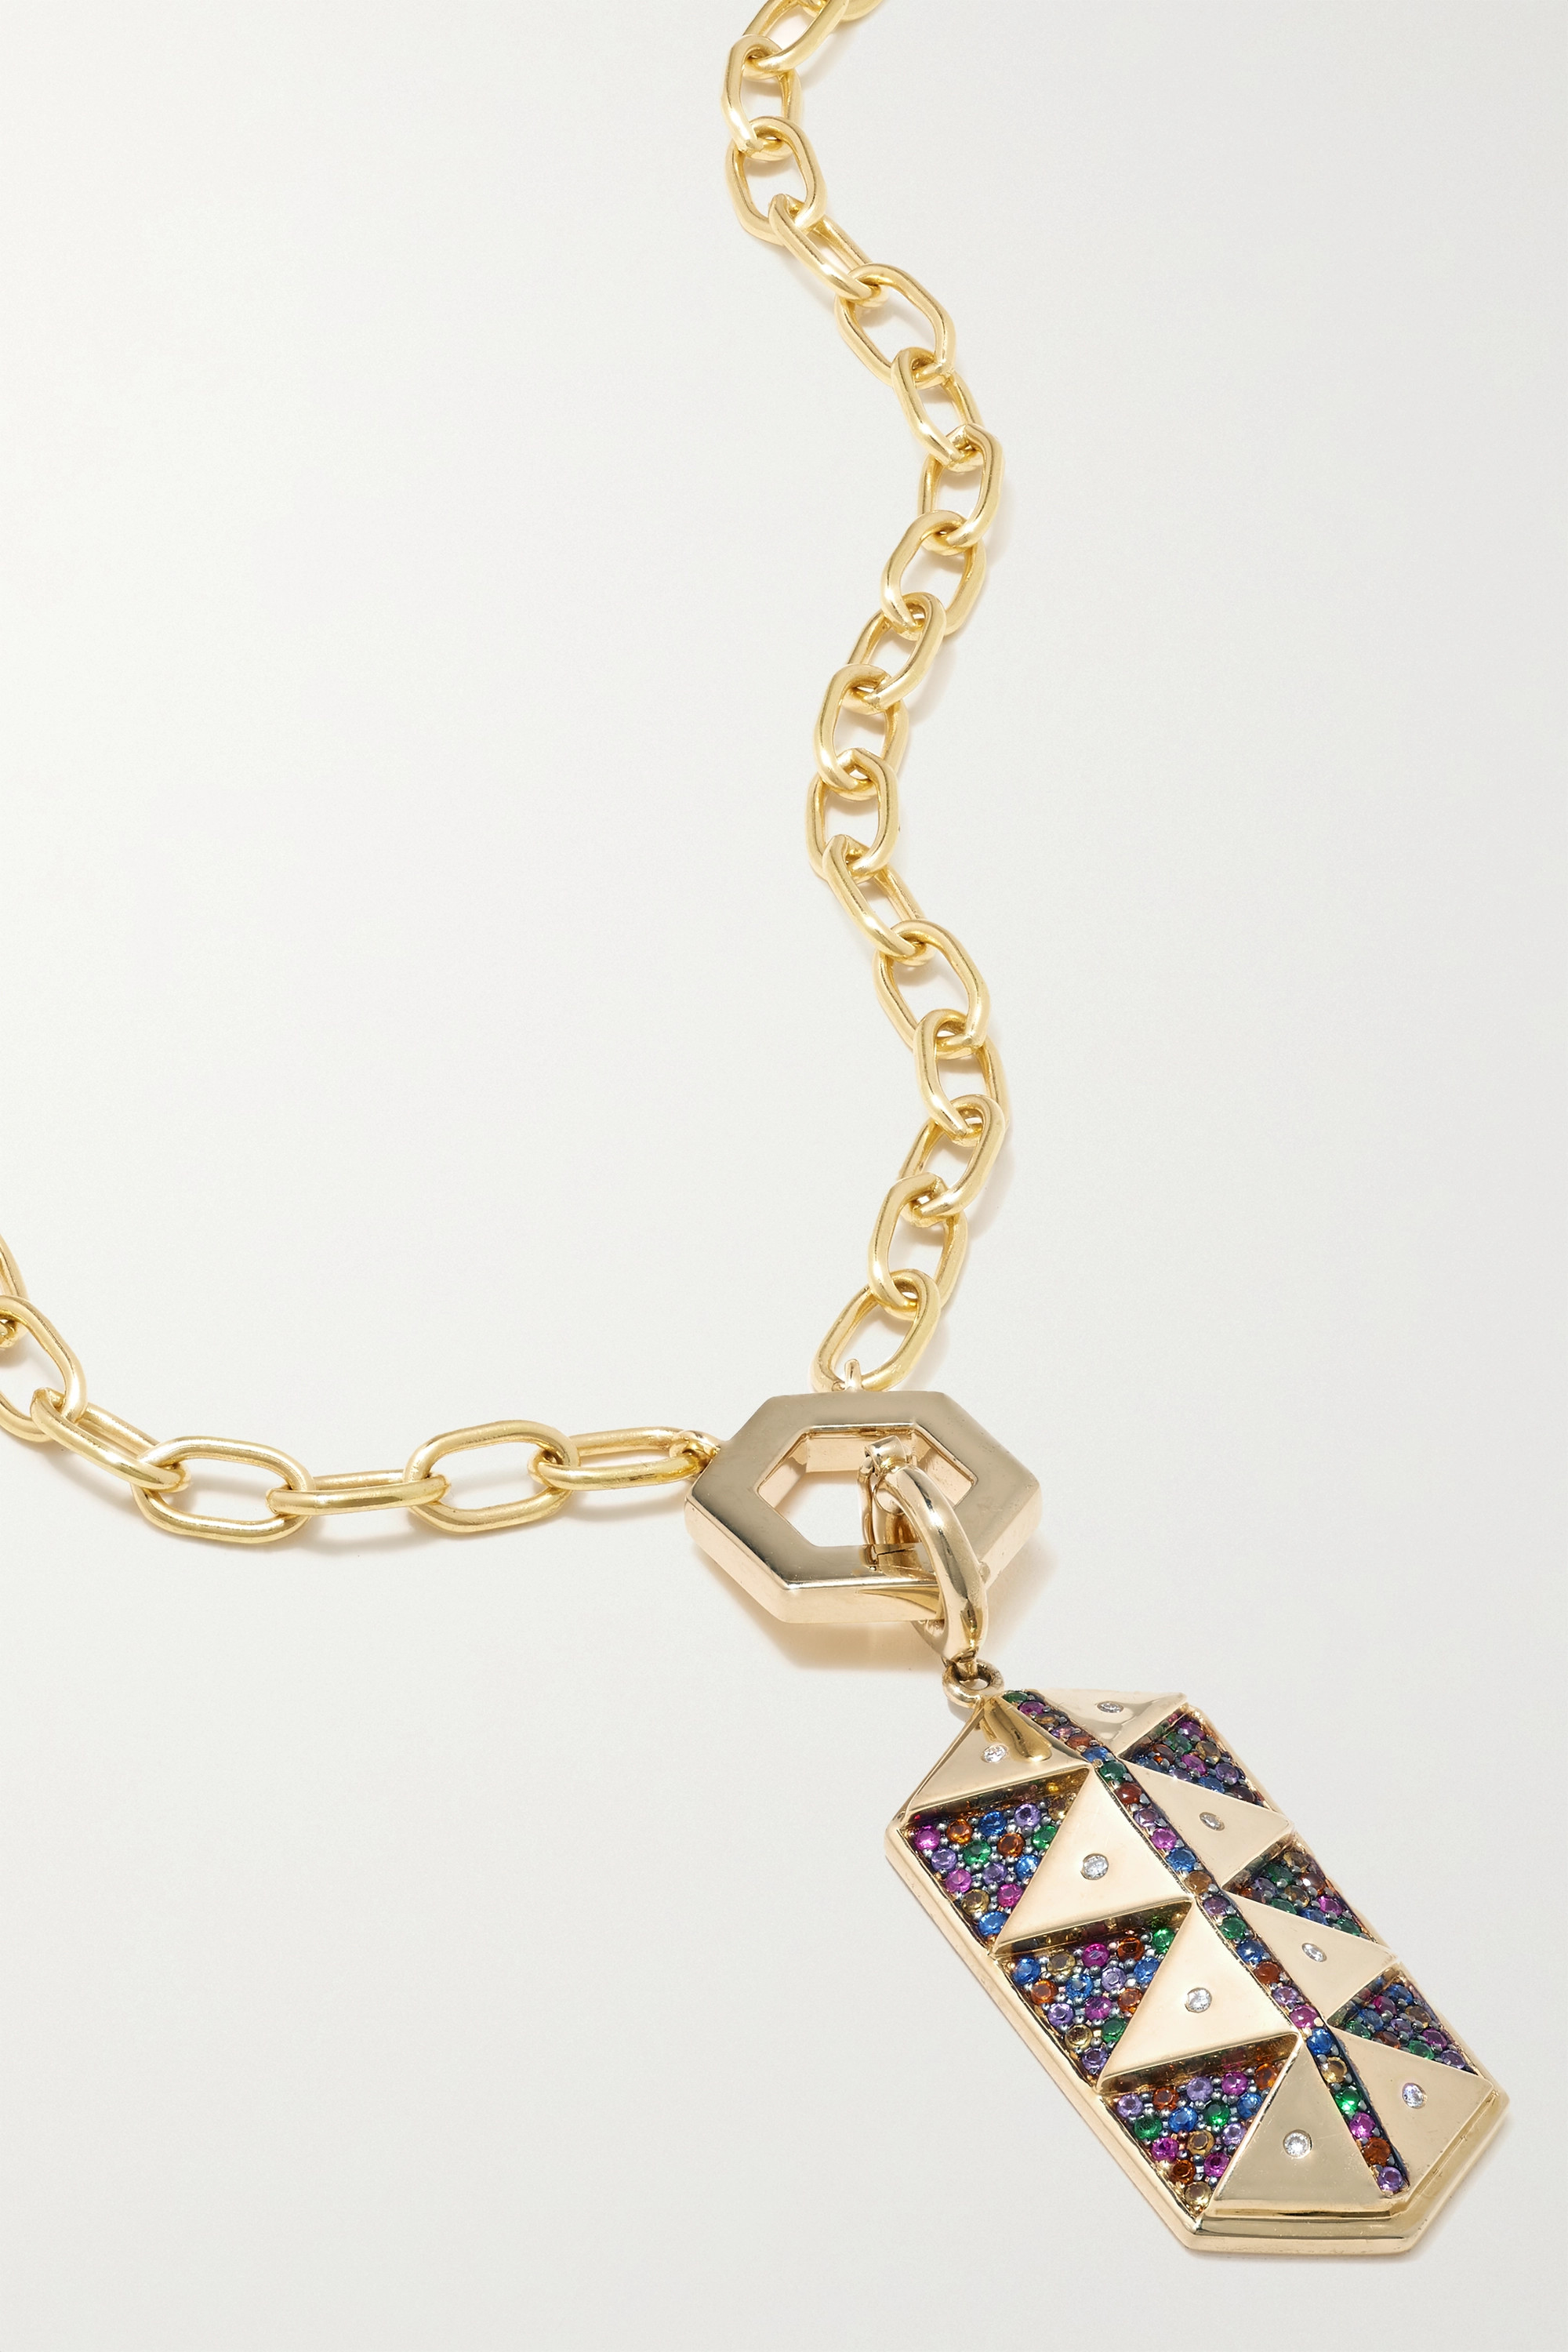 Harwell Godfrey 18-karat gold multi-stone necklace